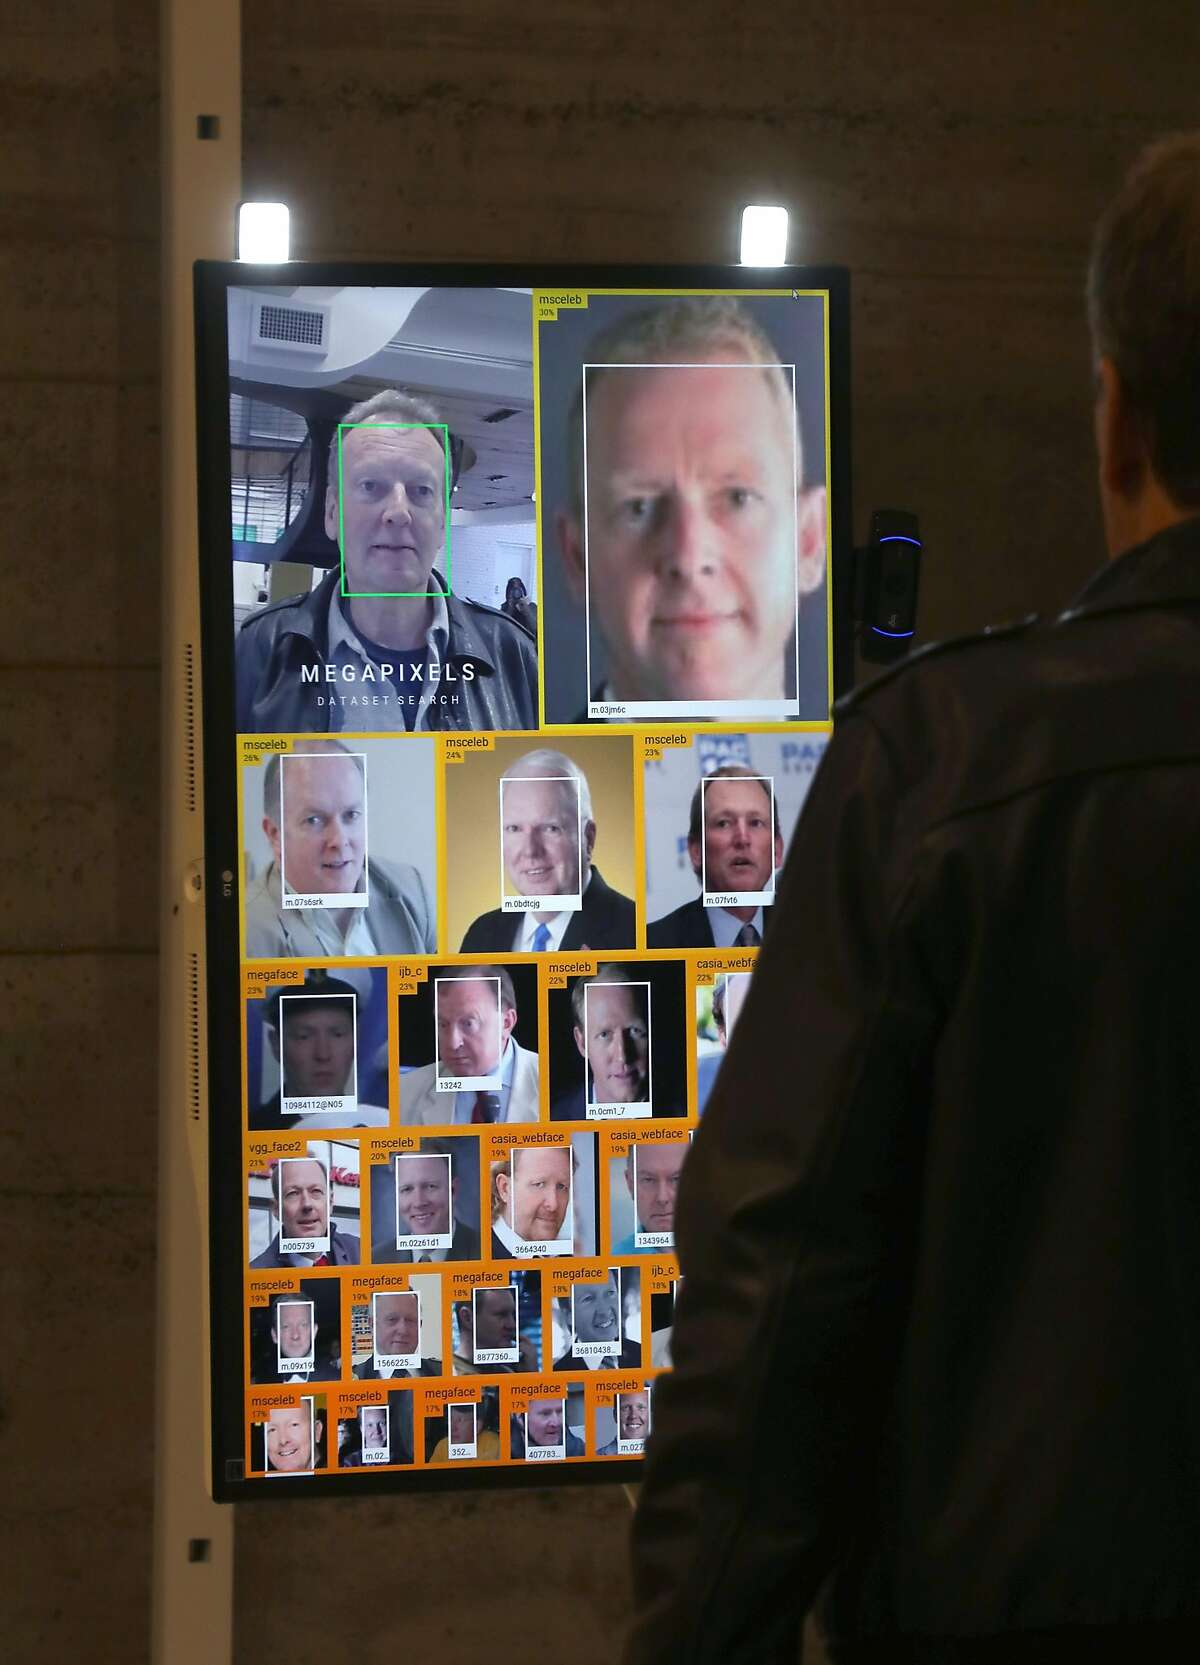 Face recognition is part of a new pop-up exhibition called